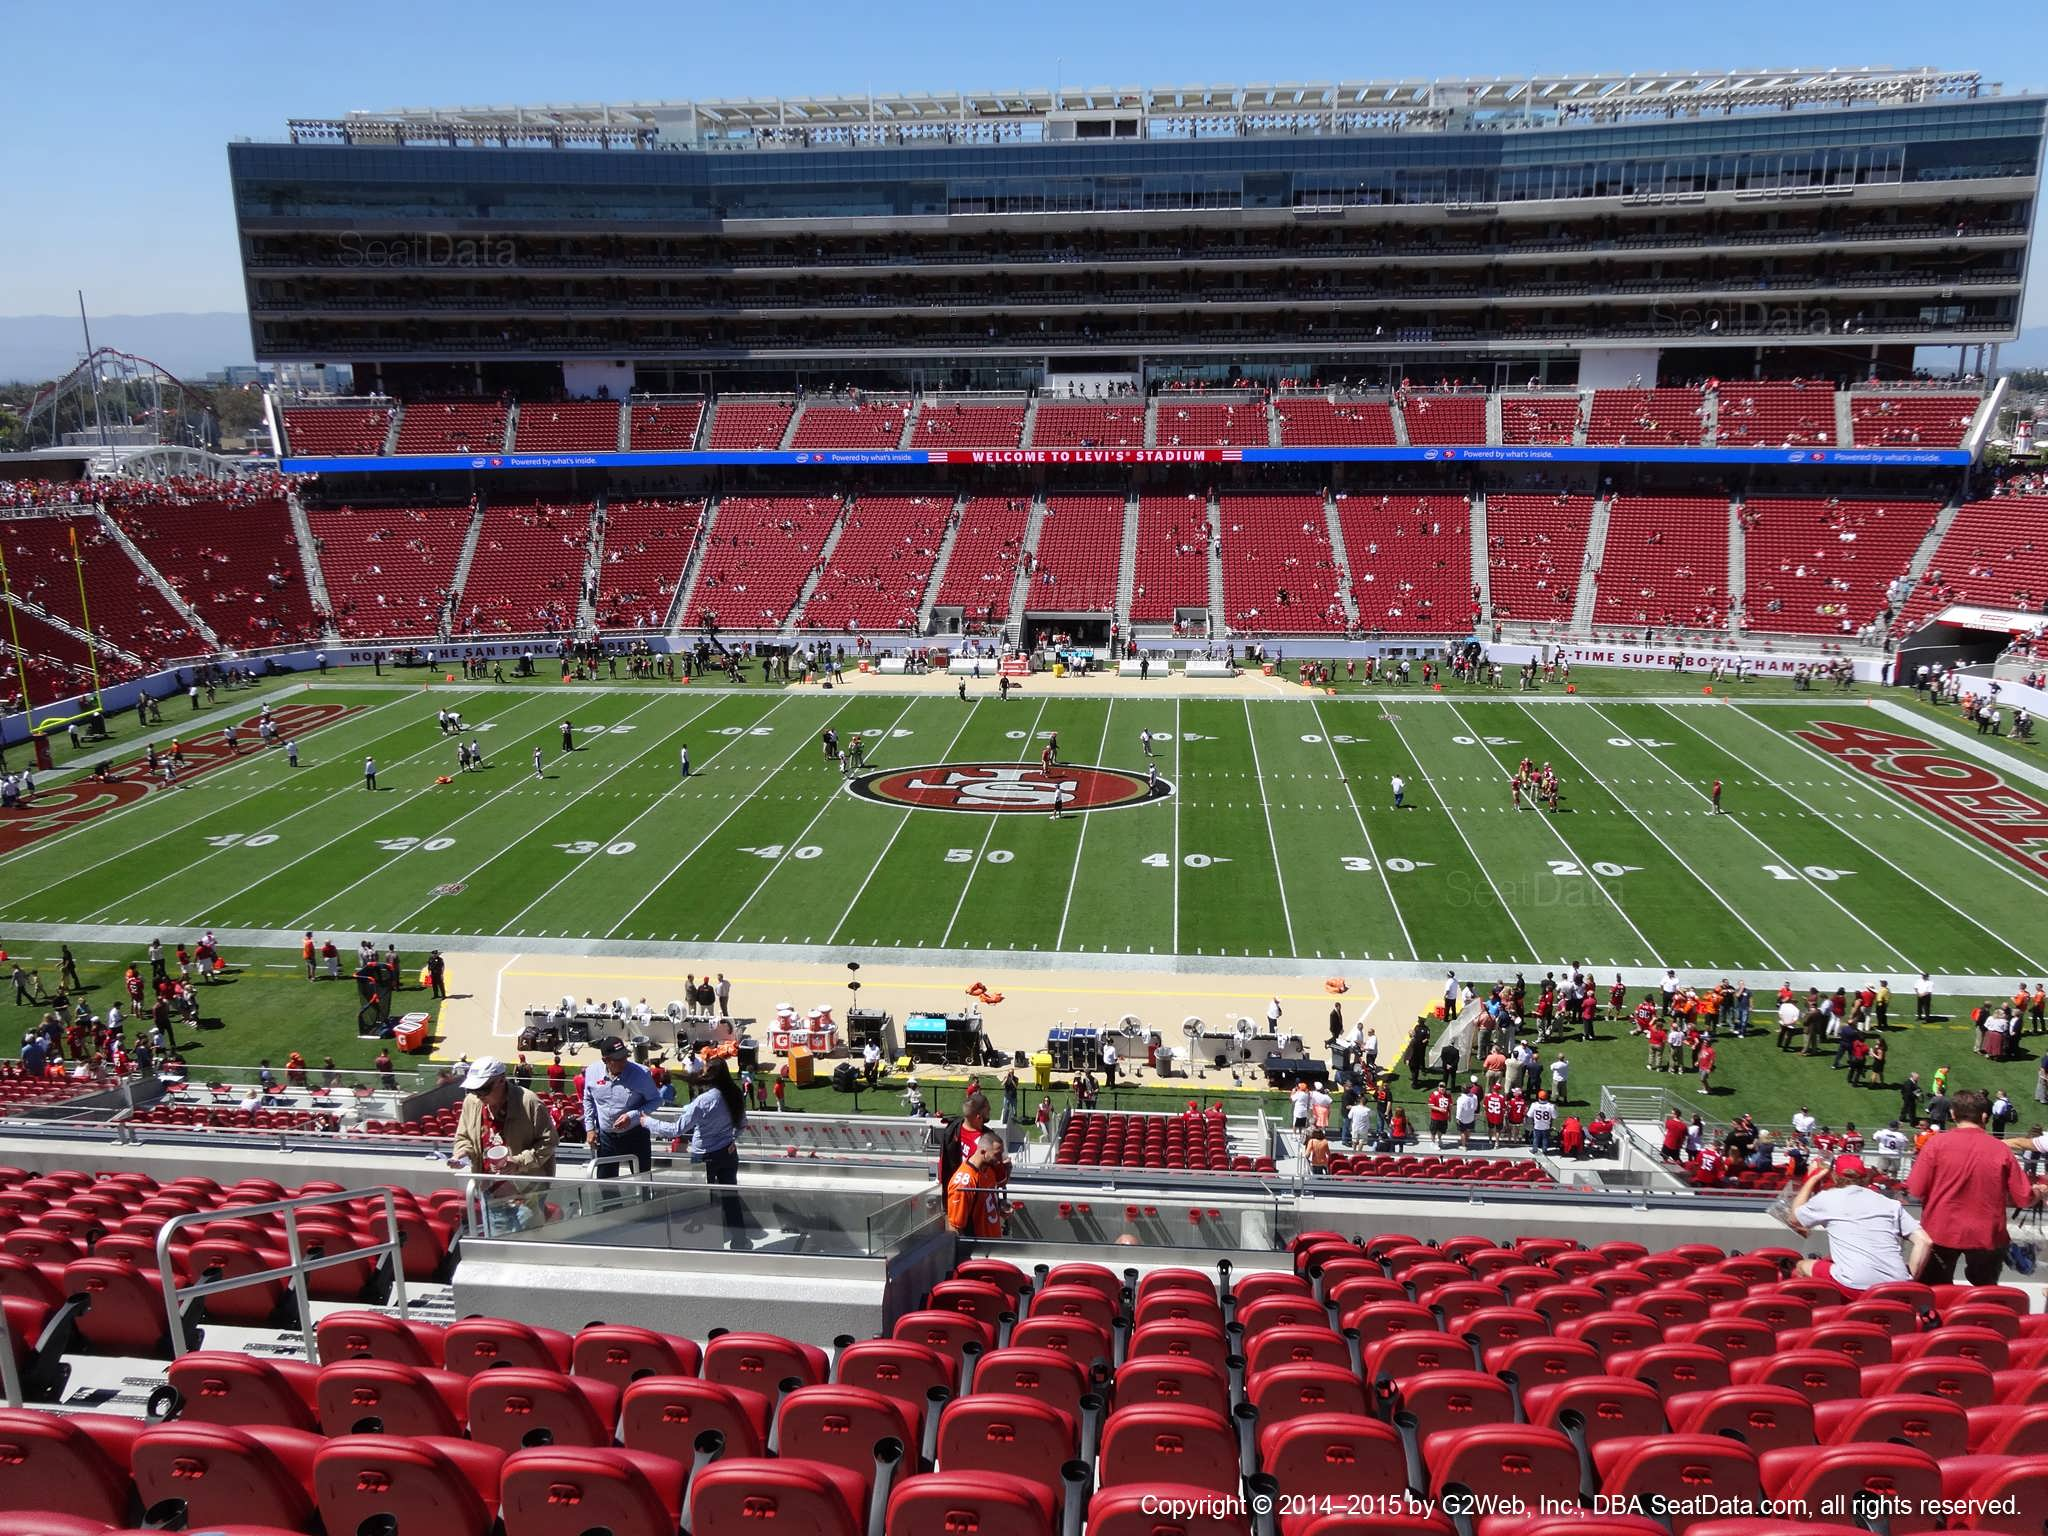 Seat view from section 215 at Levi's Stadium, home of the San Francisco 49ers